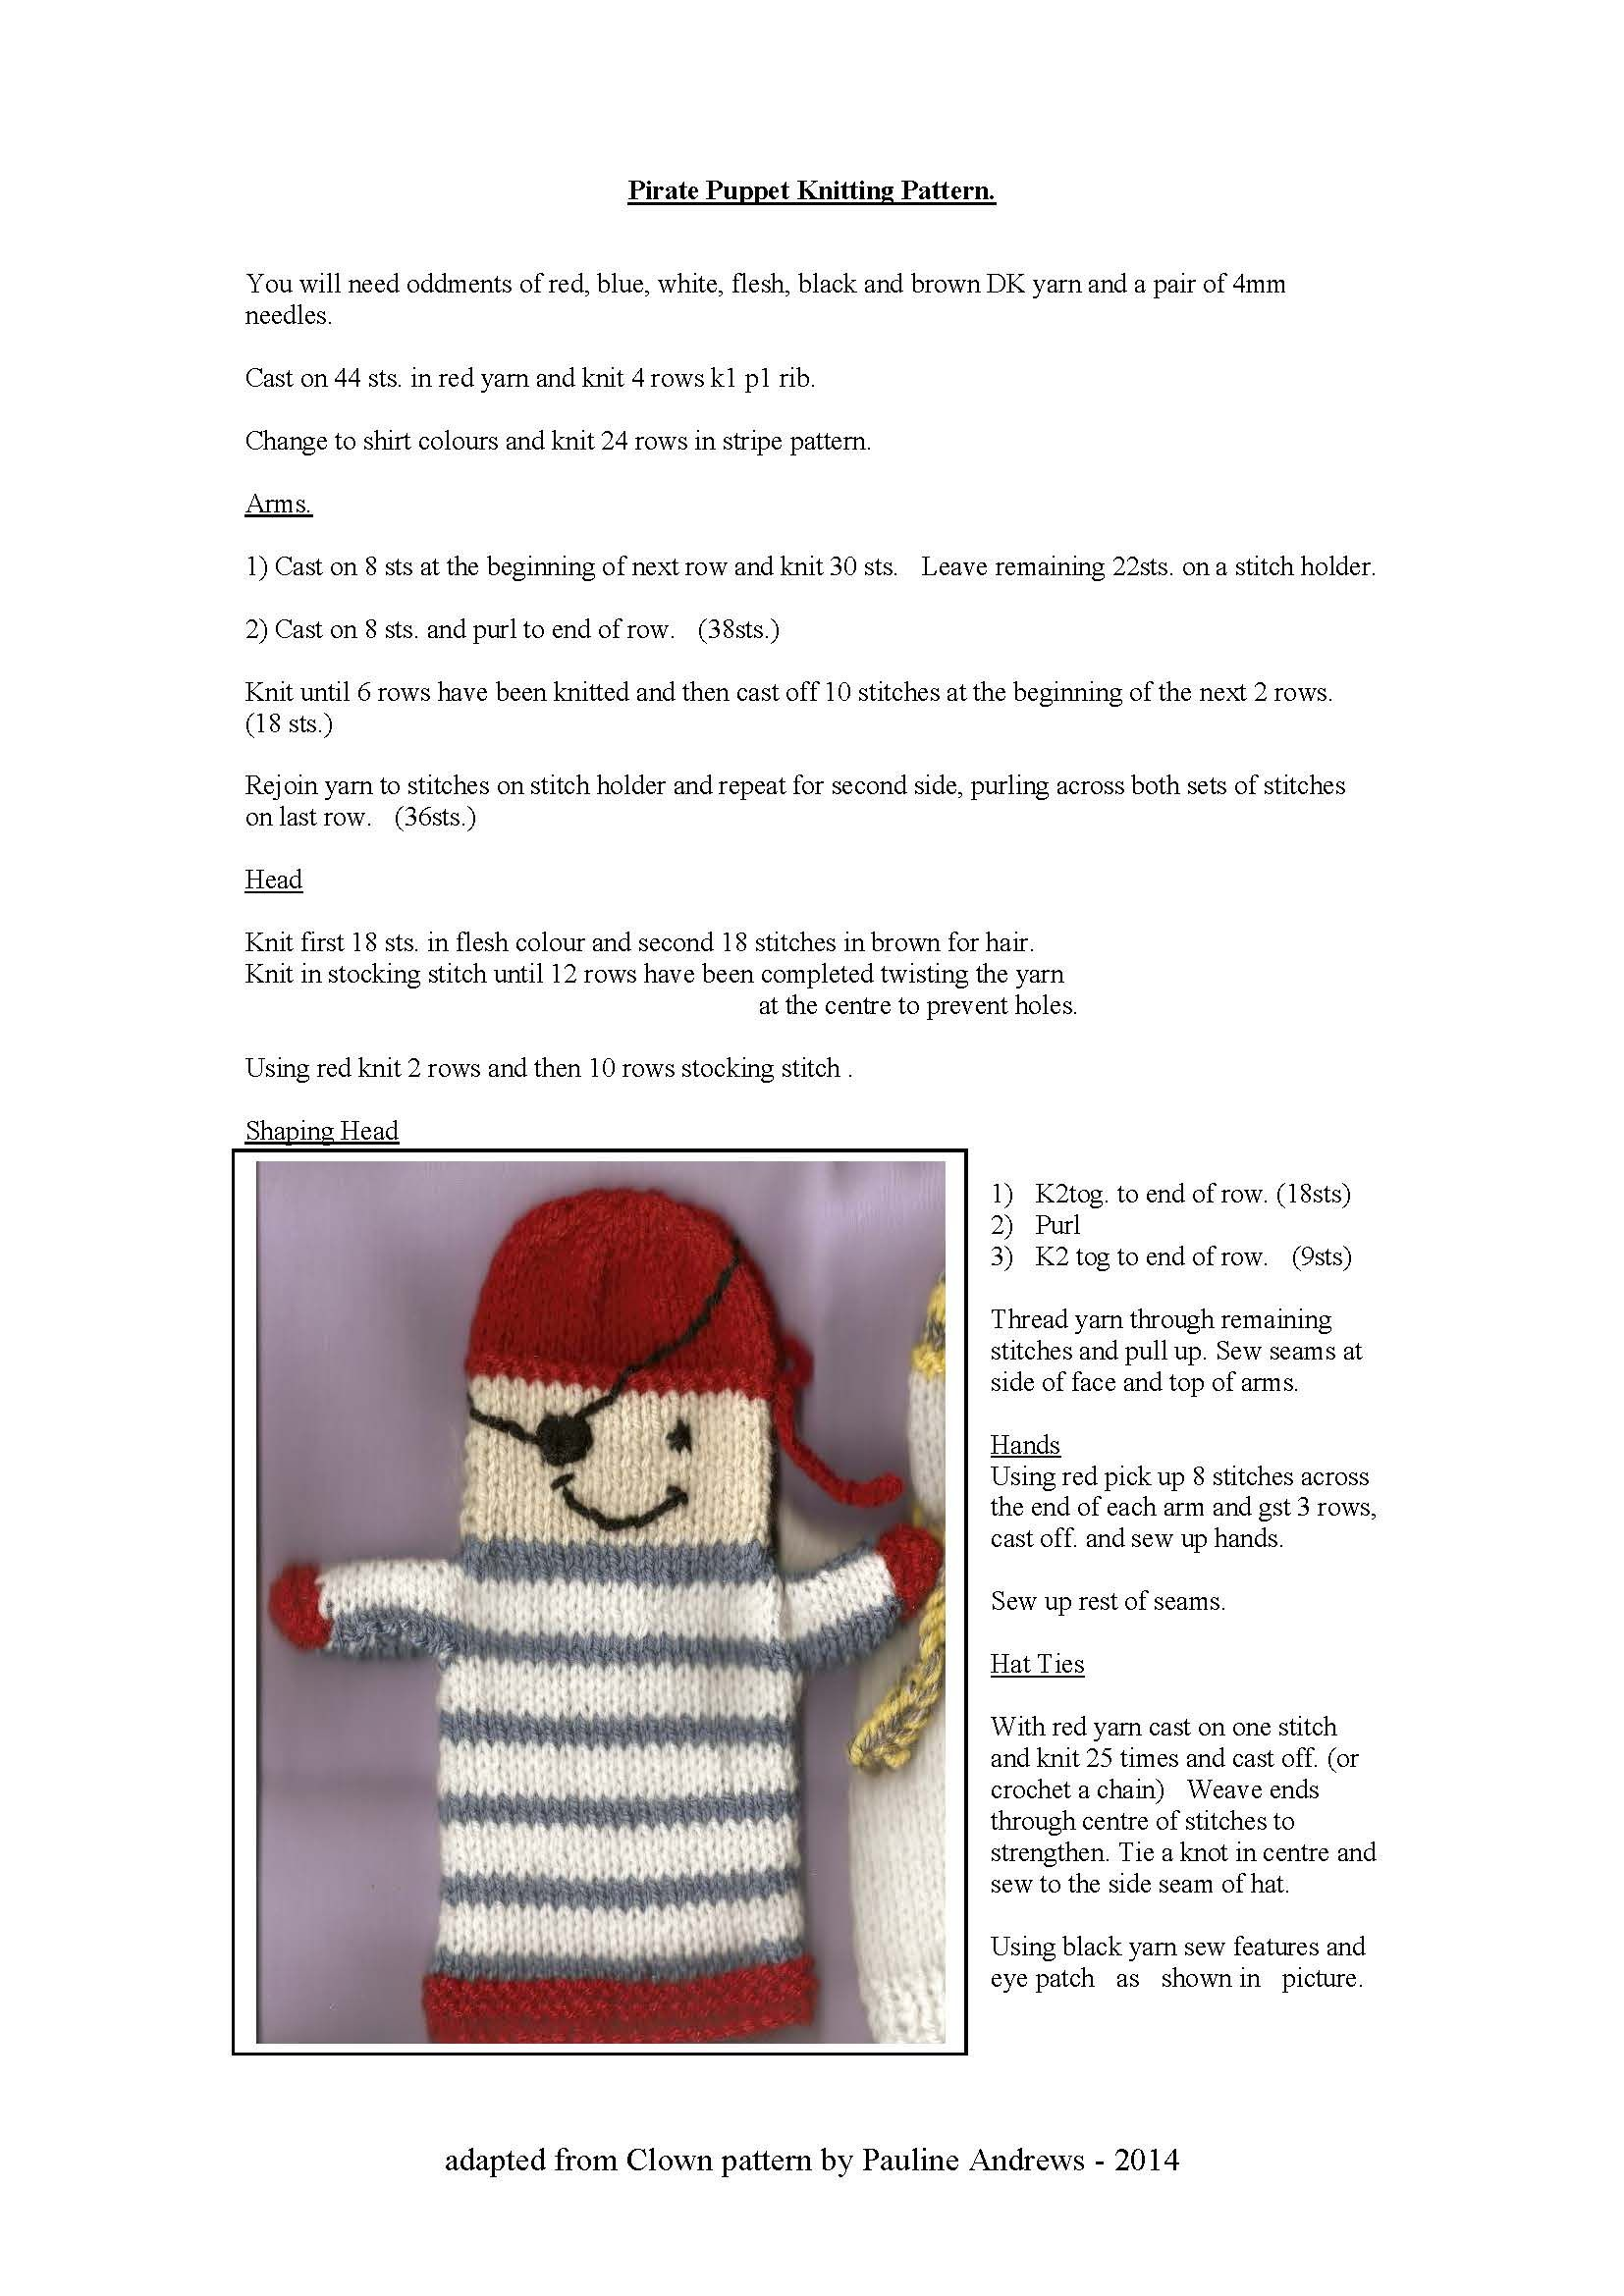 Pattern For Pirate Handpuppet Knitting Pinterest Patterns